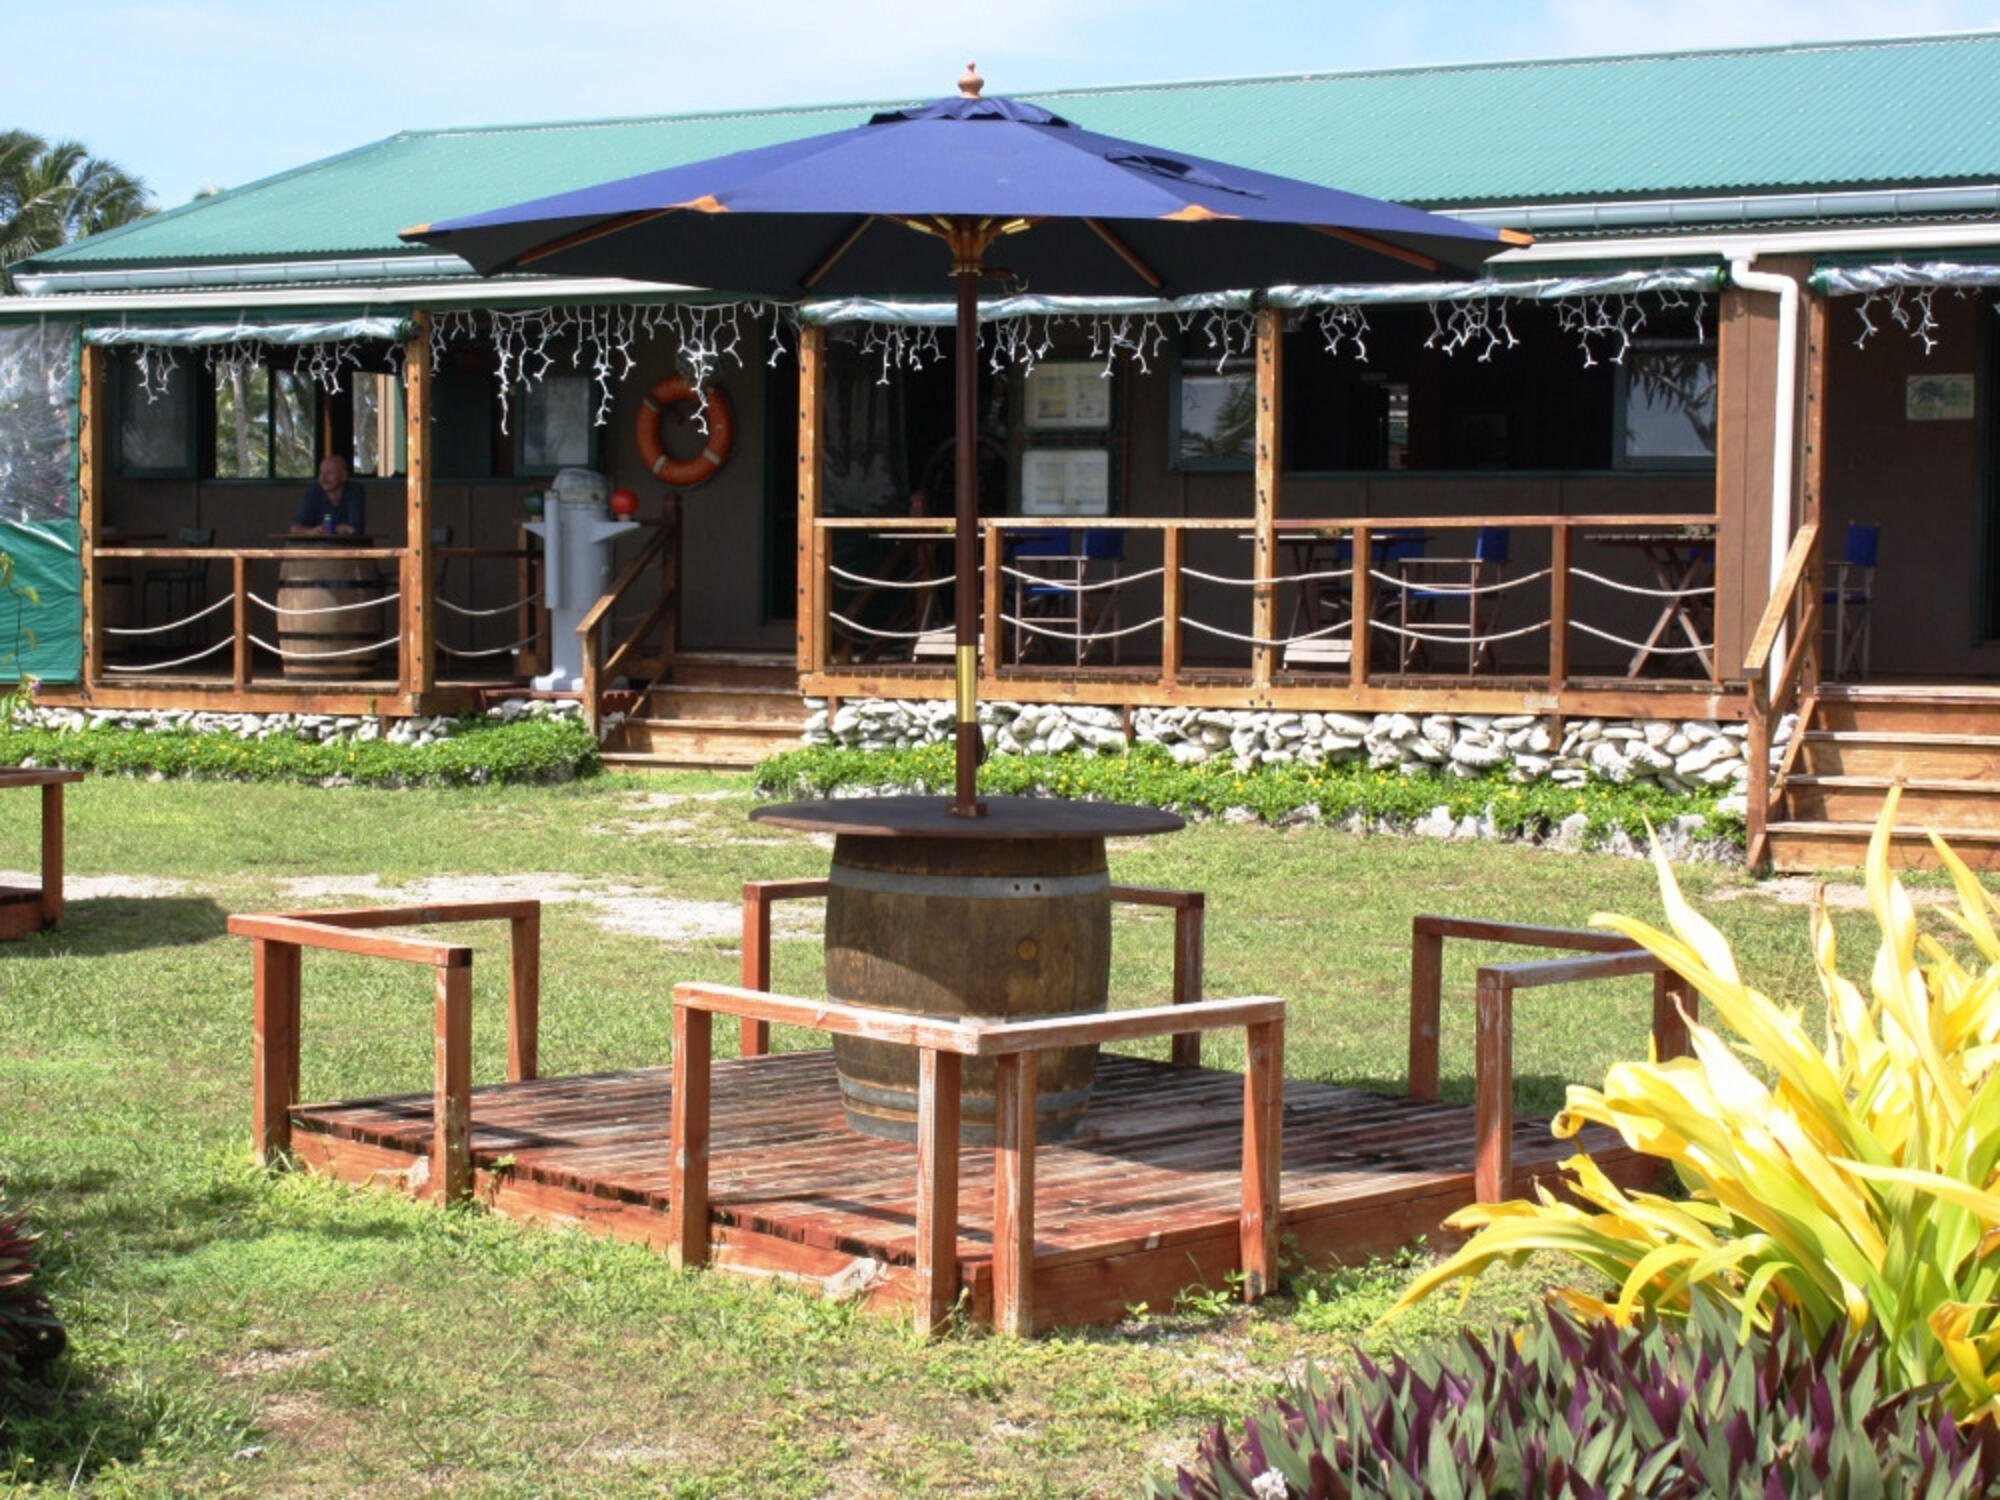 The Boat Shed Bar & Grill in Aitutaki